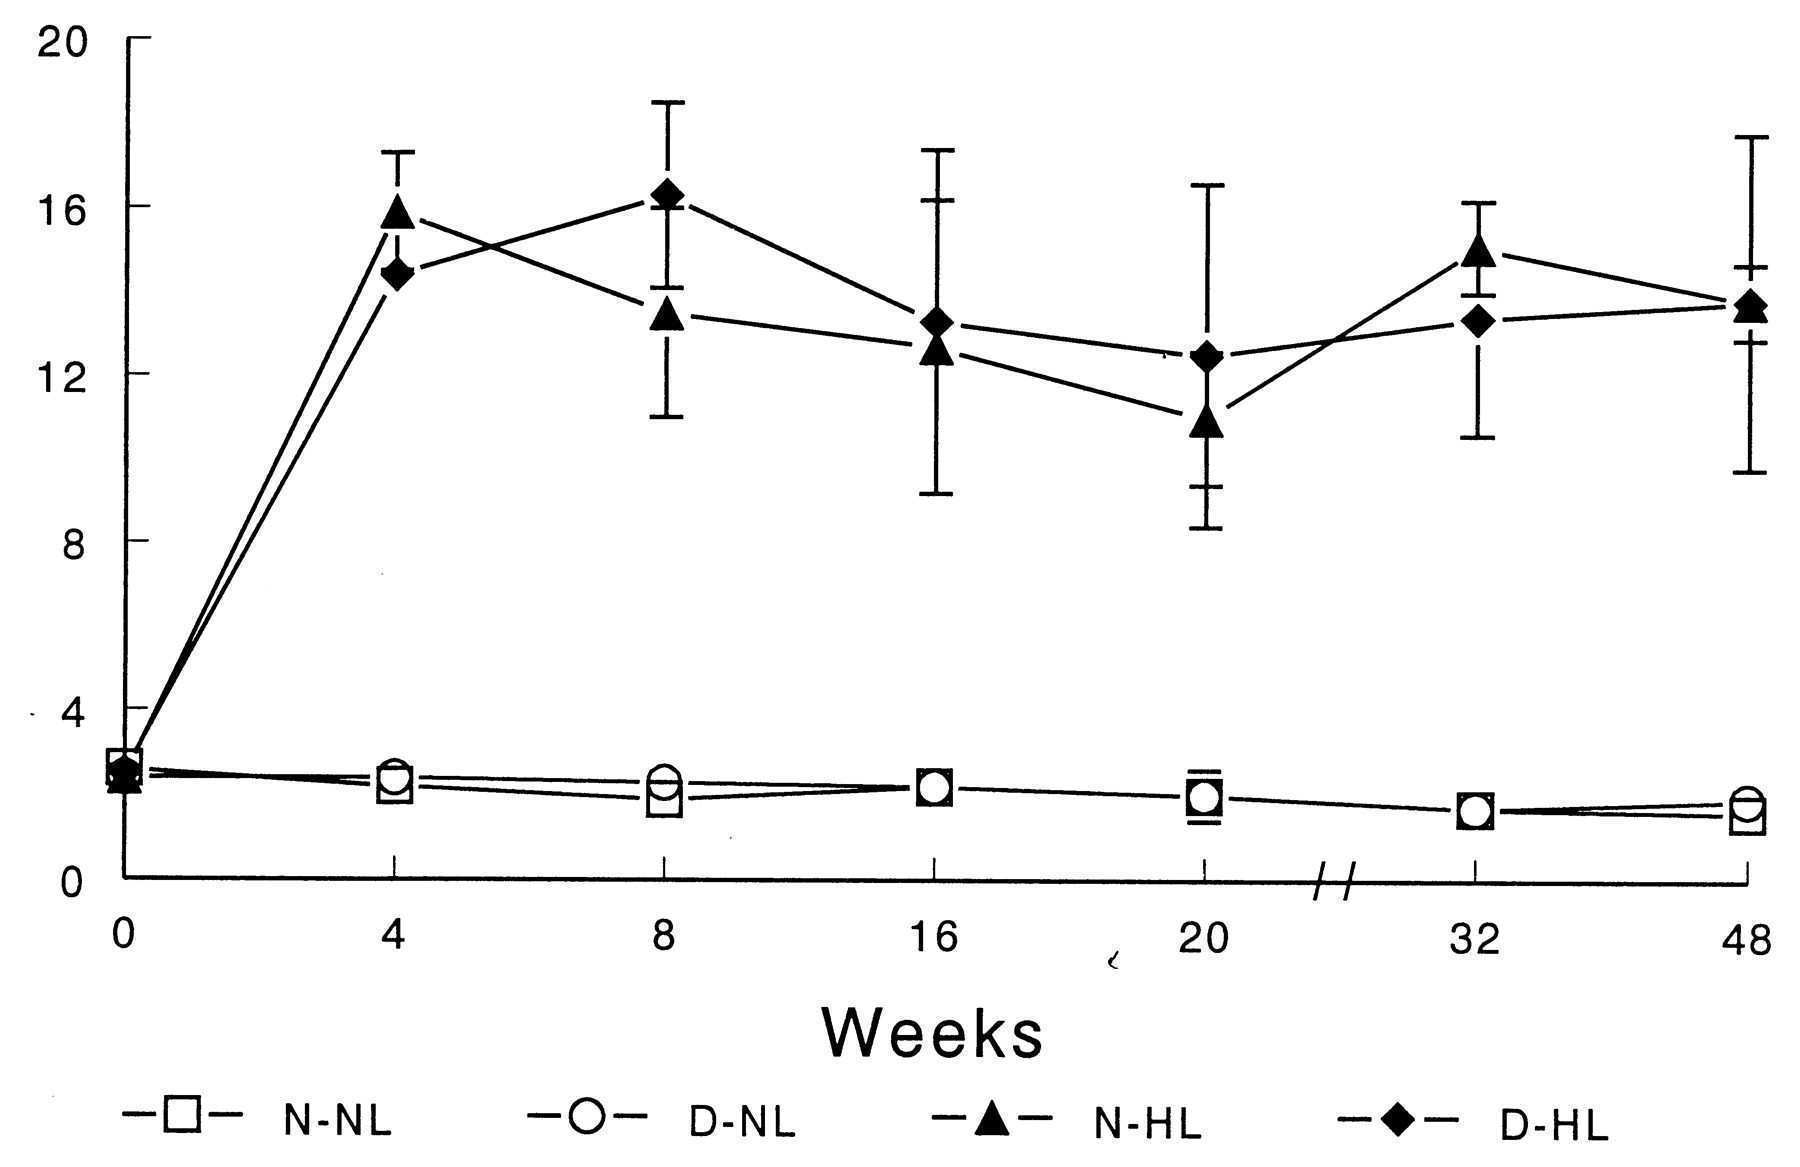 Diabetes Induced Accelerated Atherosclerosis in Swine